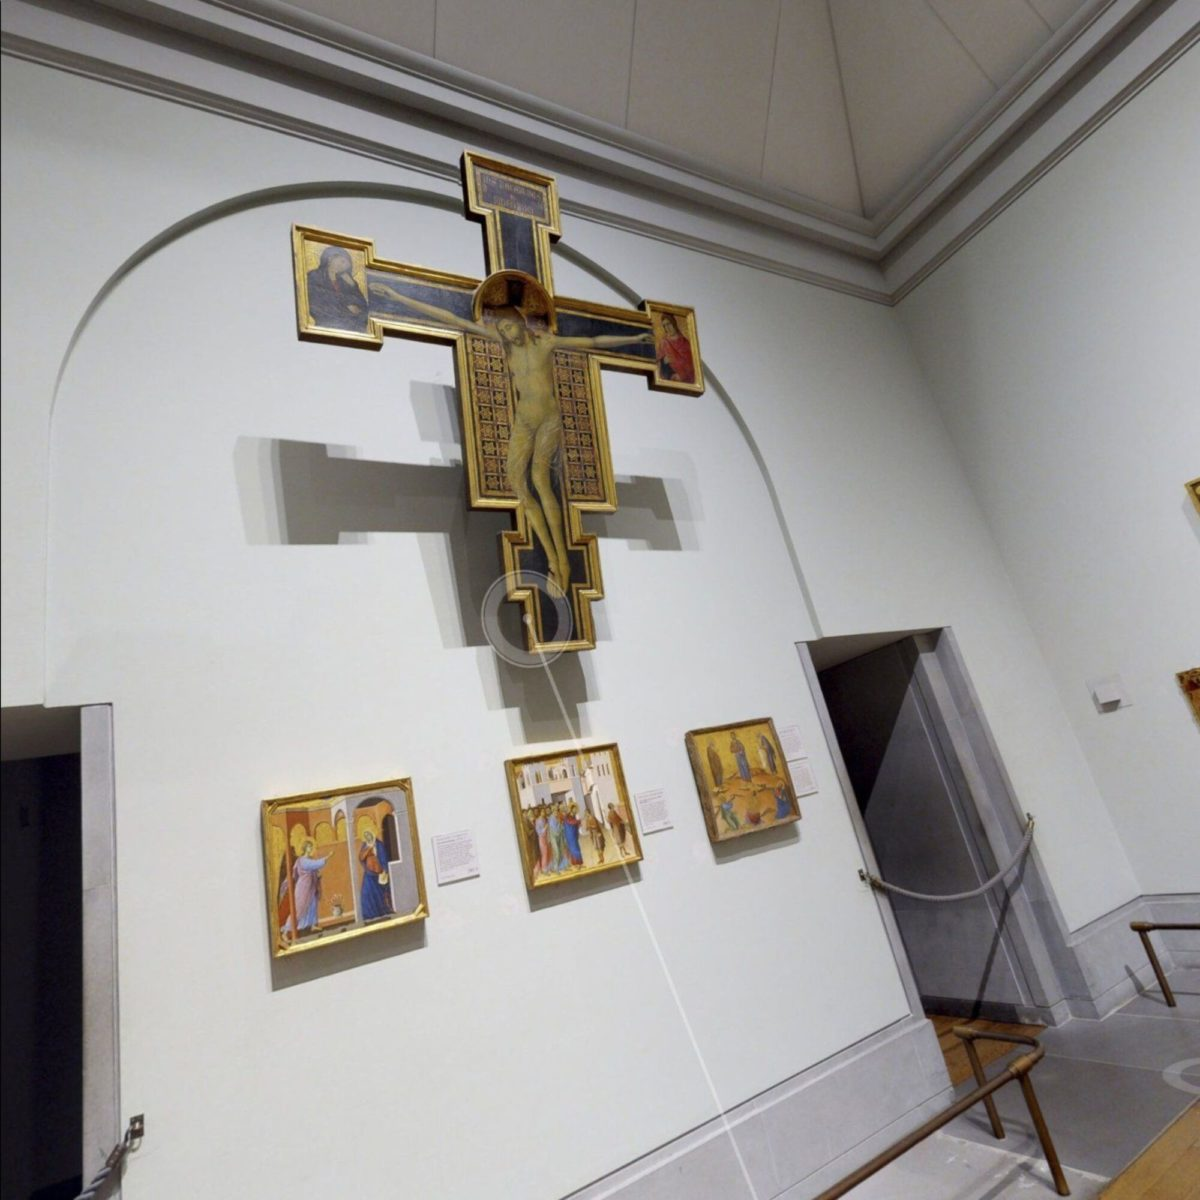 The Sainsbury Wing in National Gallery, UK